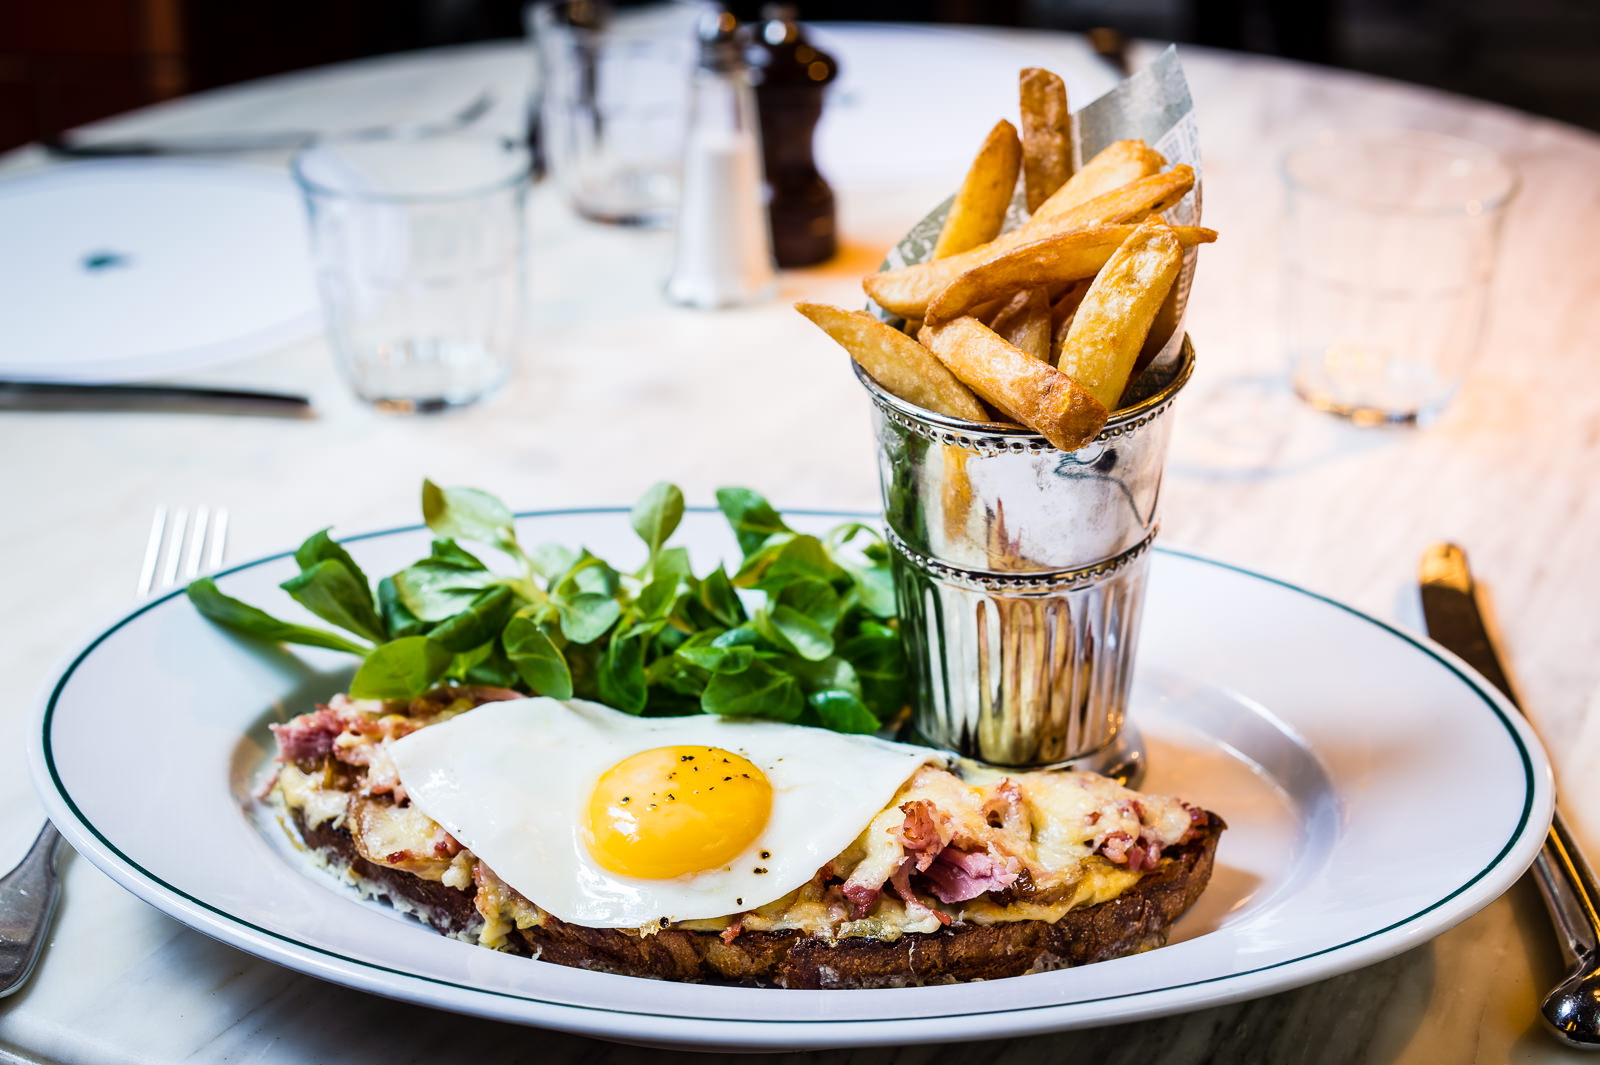 Croque Madame the Ivy Cafe Marylebone - The Ivy Cafe Marylebone